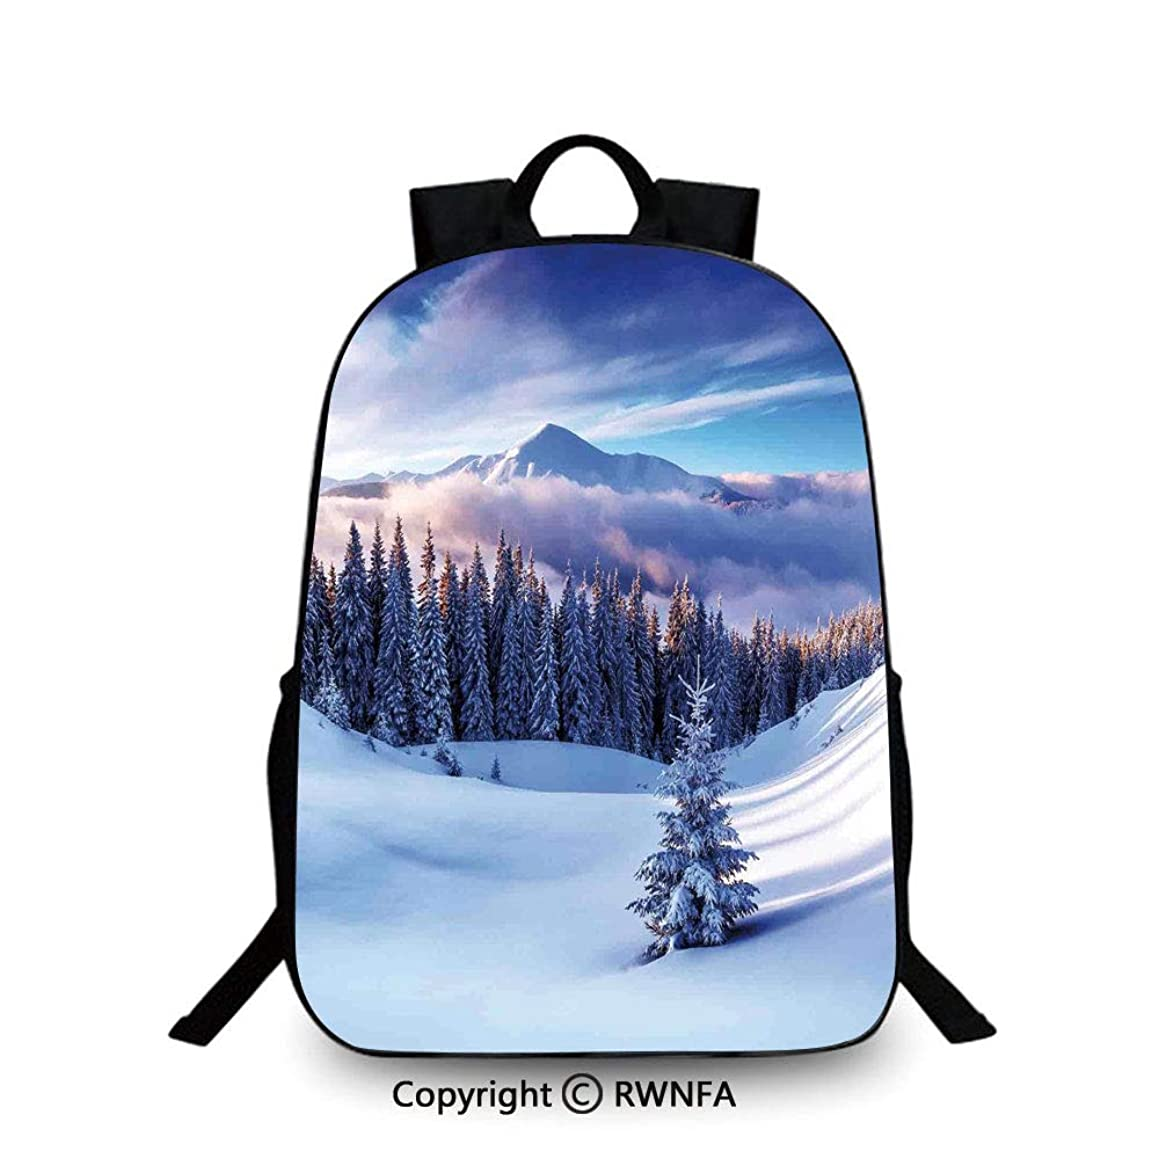 School Backpack,Surreal Winter Scenery with High Mountain Peaks and Snowy Pine Trees Travel College School Bags Blue White